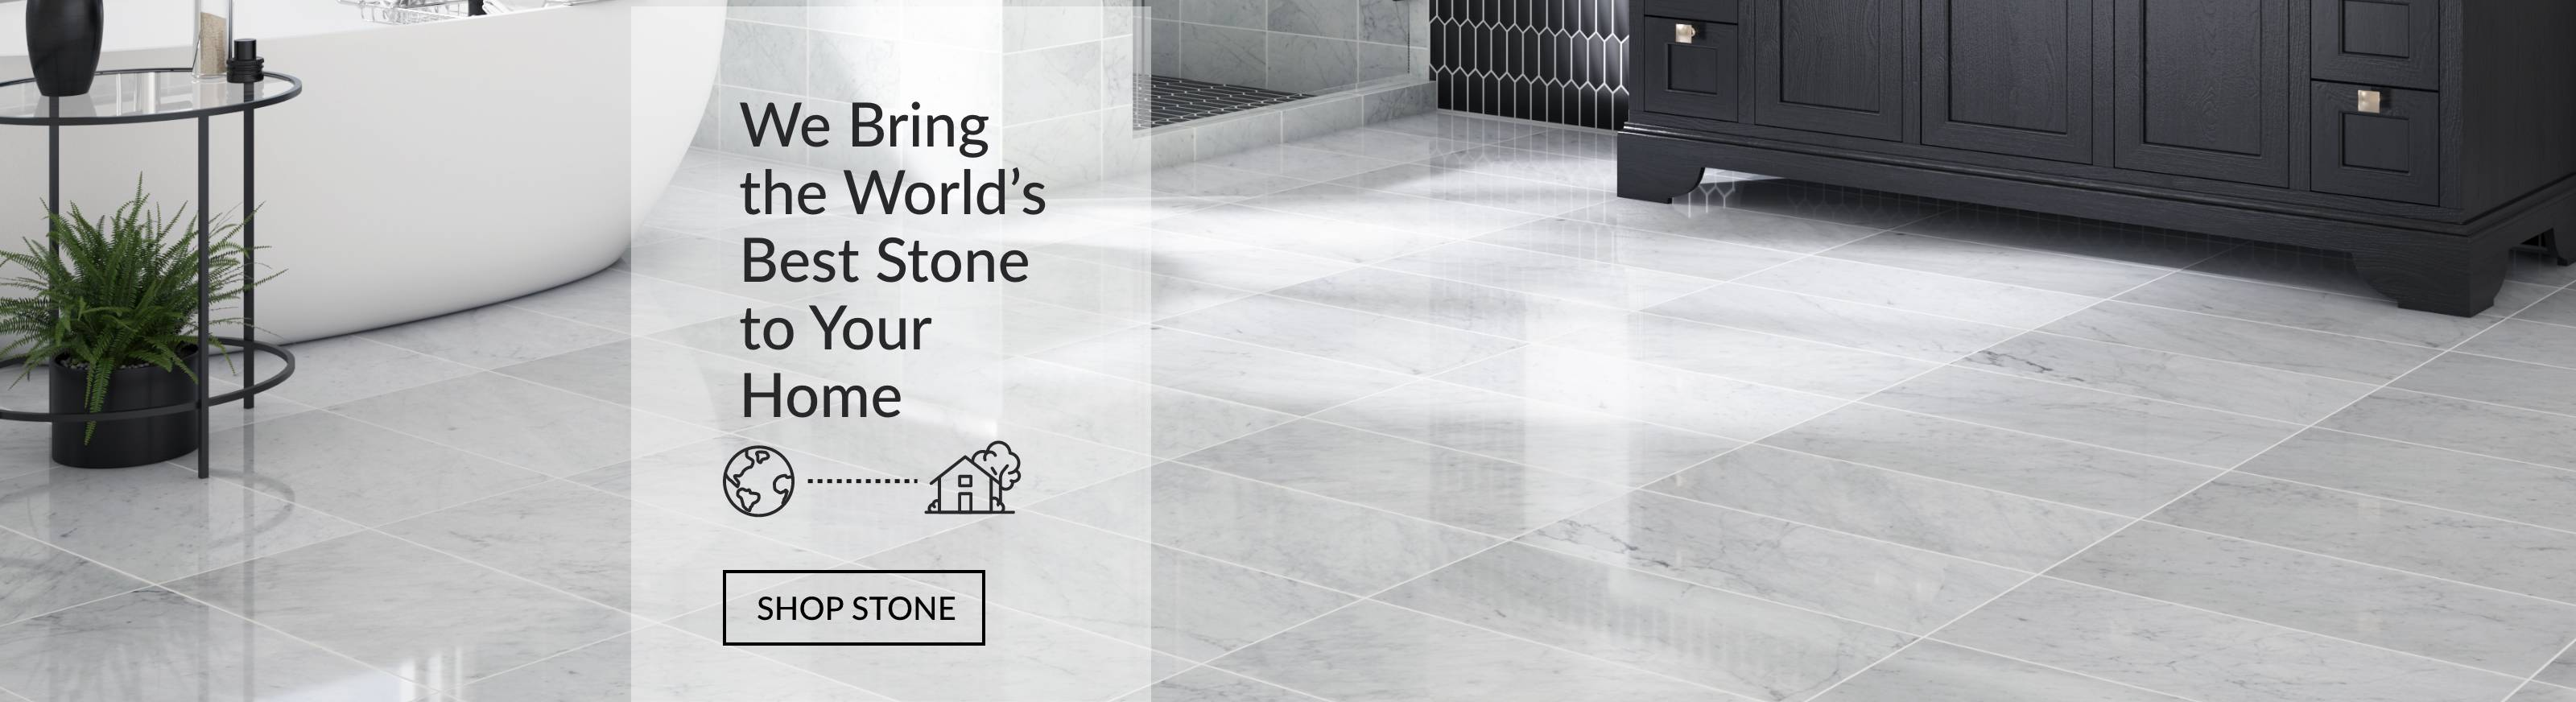 We Bring the World's Best Stone to Your Home